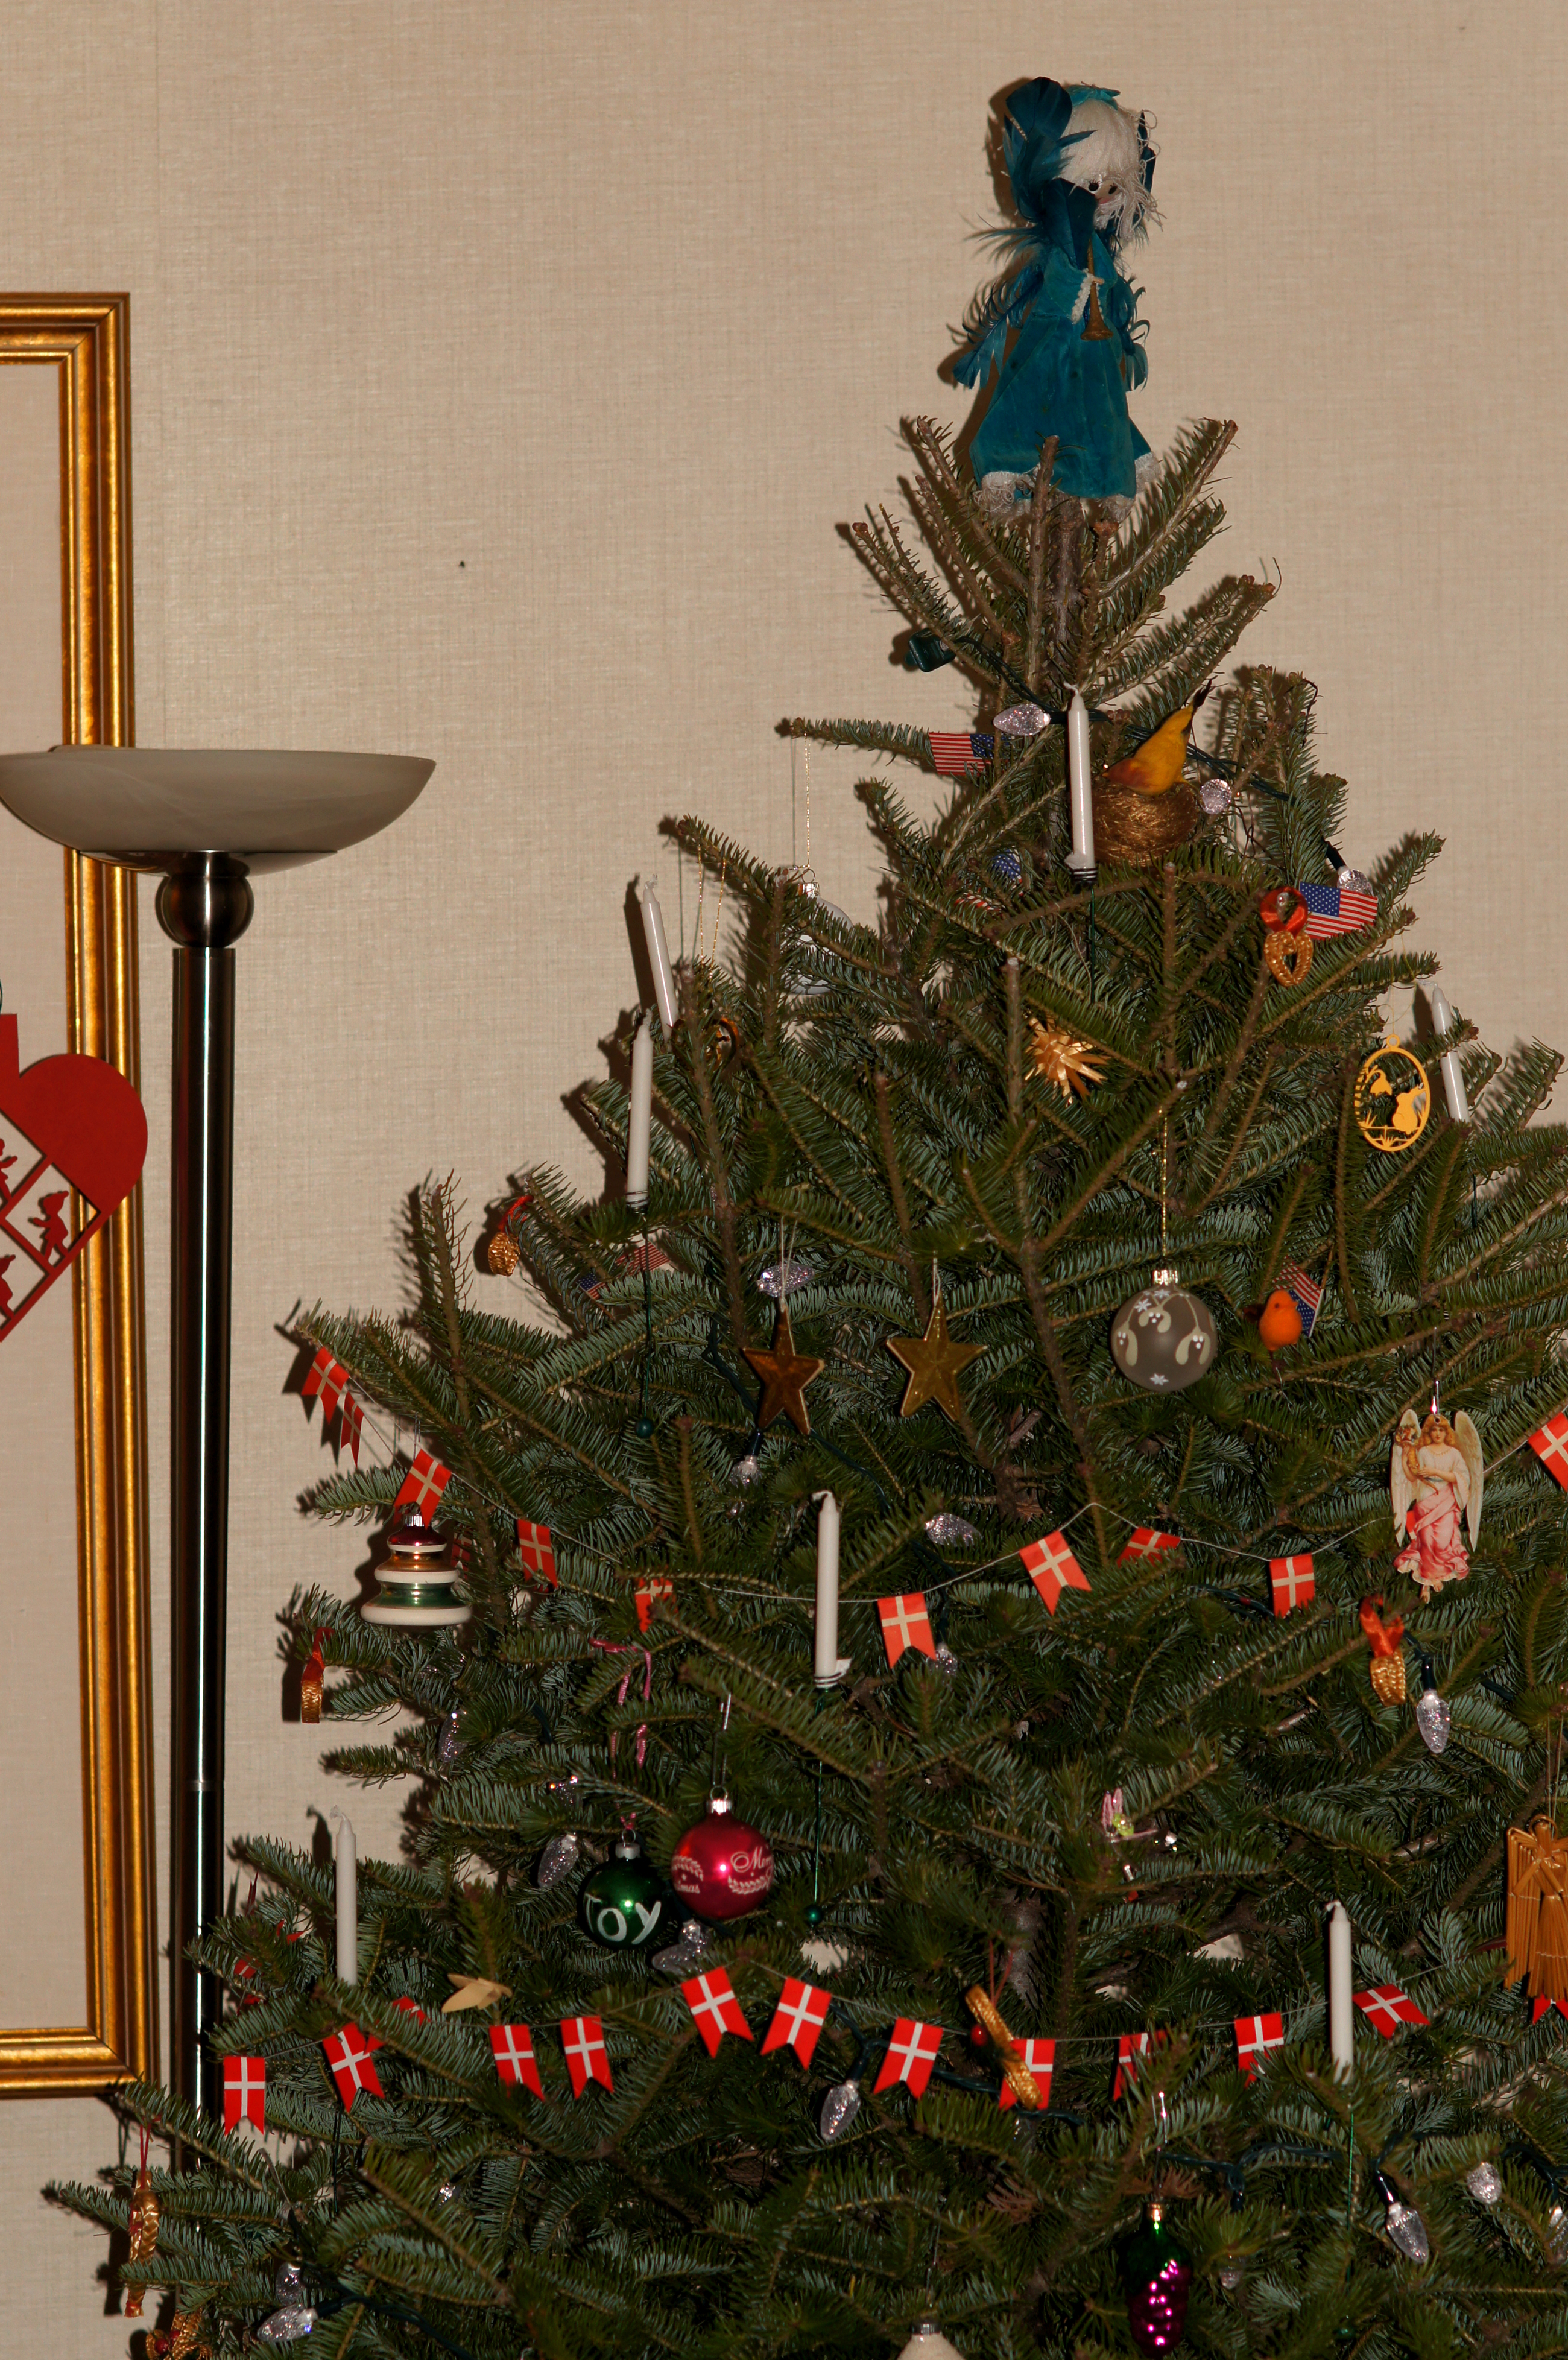 The Christmas Tree Decorated With